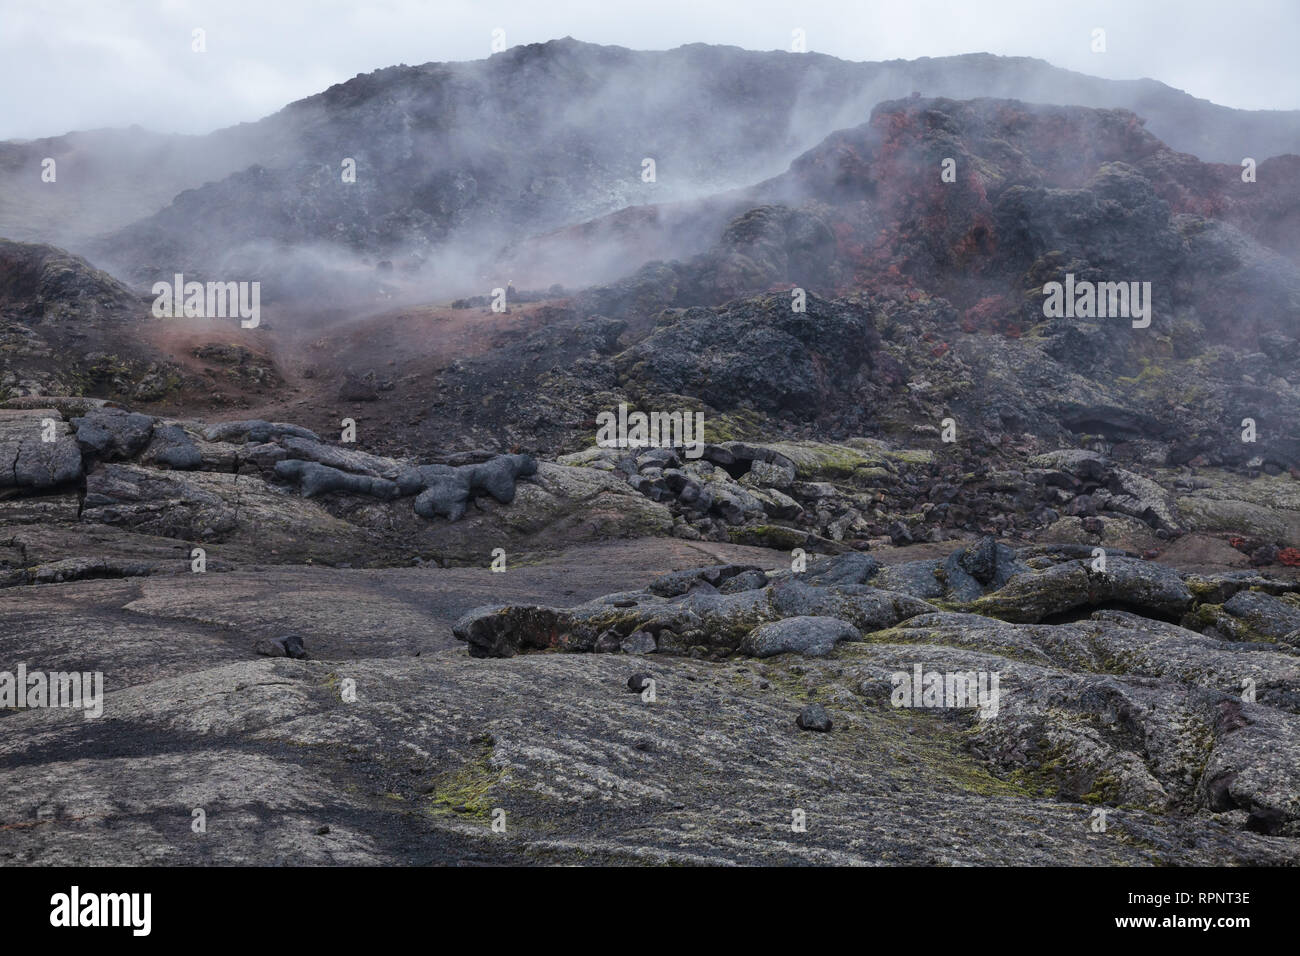 Hot steaming lava field at Krafla volcanic area in Mývatn region, Northeastern Iceland, Scandinavia - Stock Image